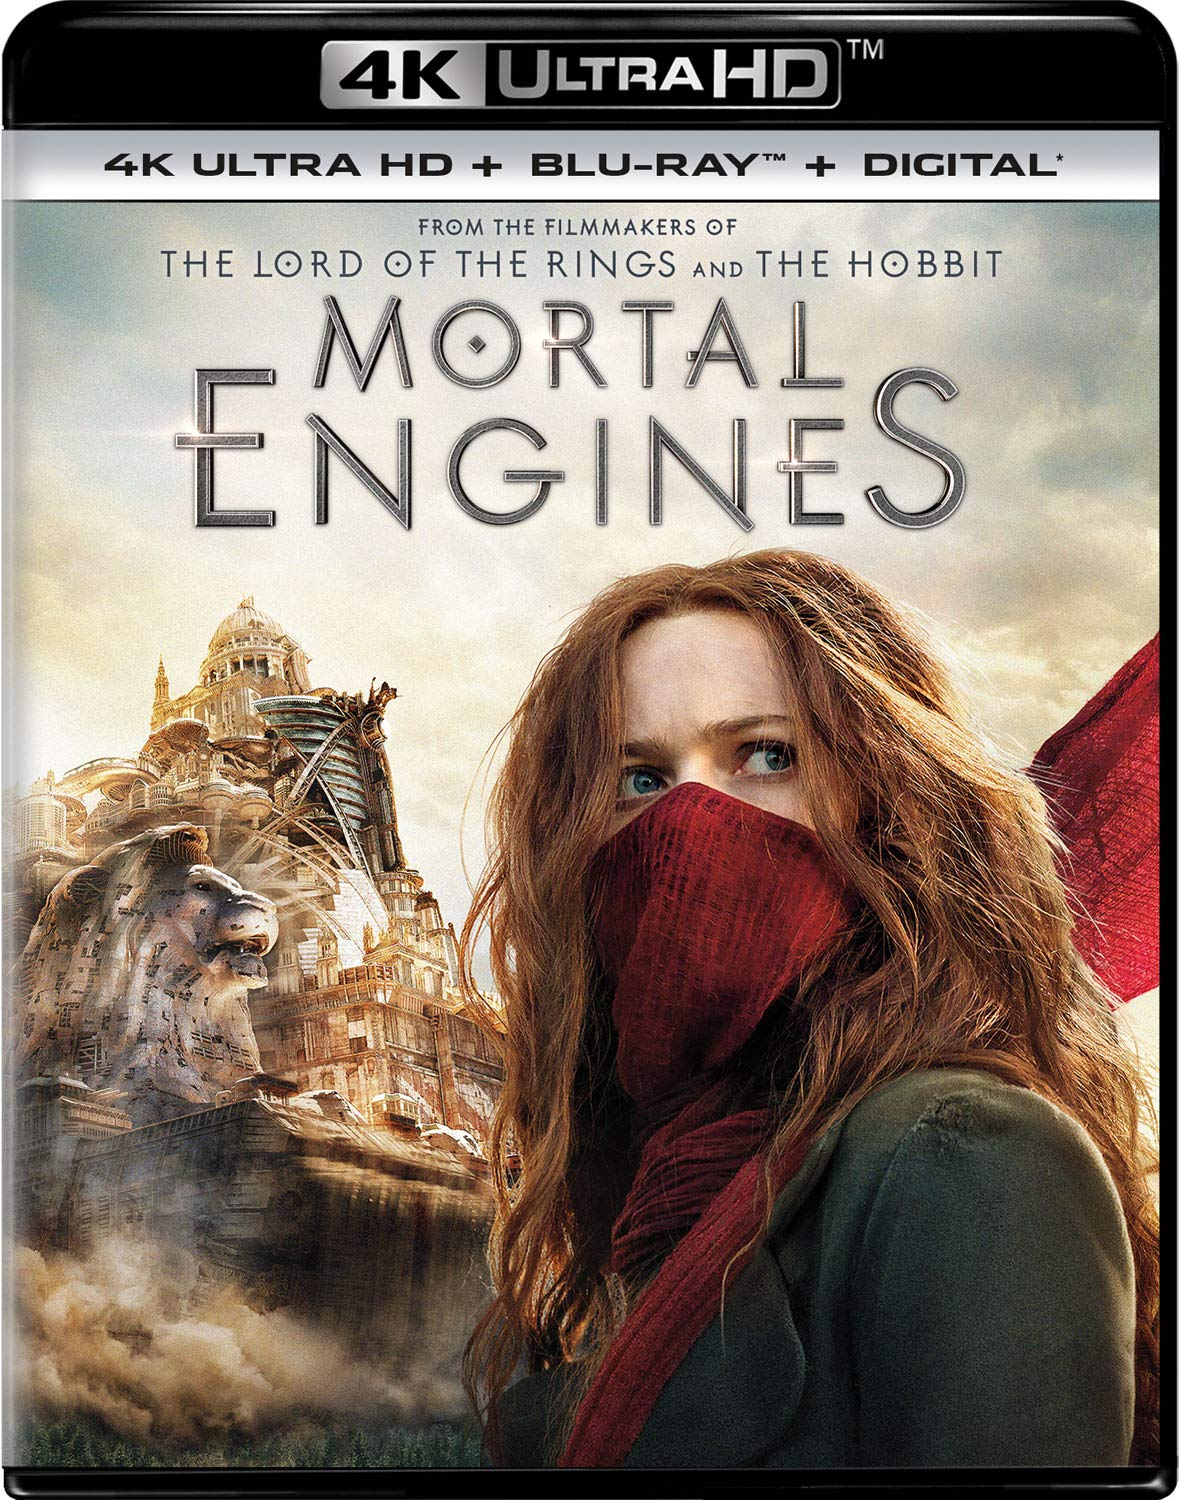 4K Blu-ray : Mortal Engines (With Blu-ray, 4K Mastering, 2 Pack, Digital Copy)